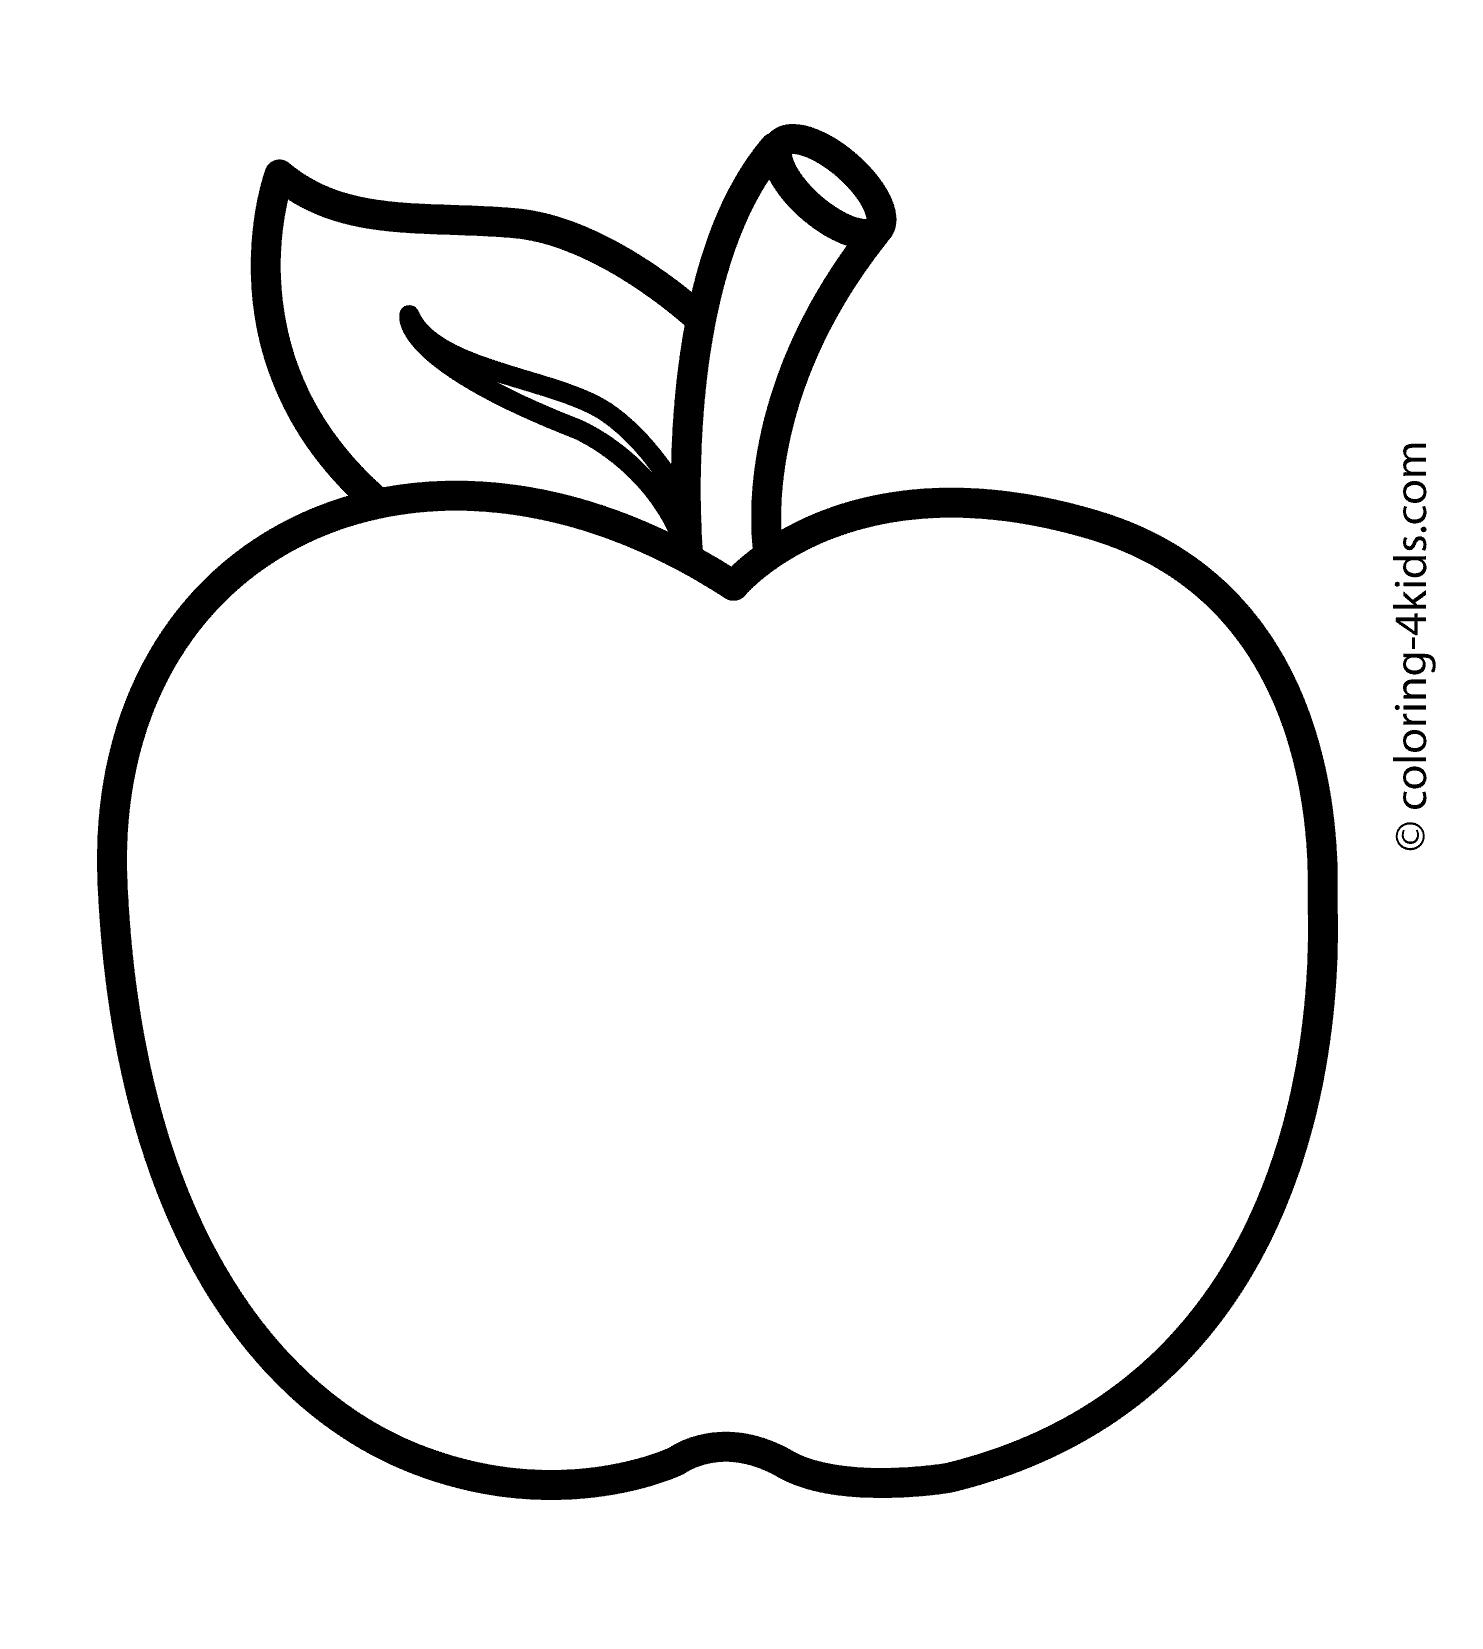 Apple coloring pages rich image and wallpaper for Apple coloring pages